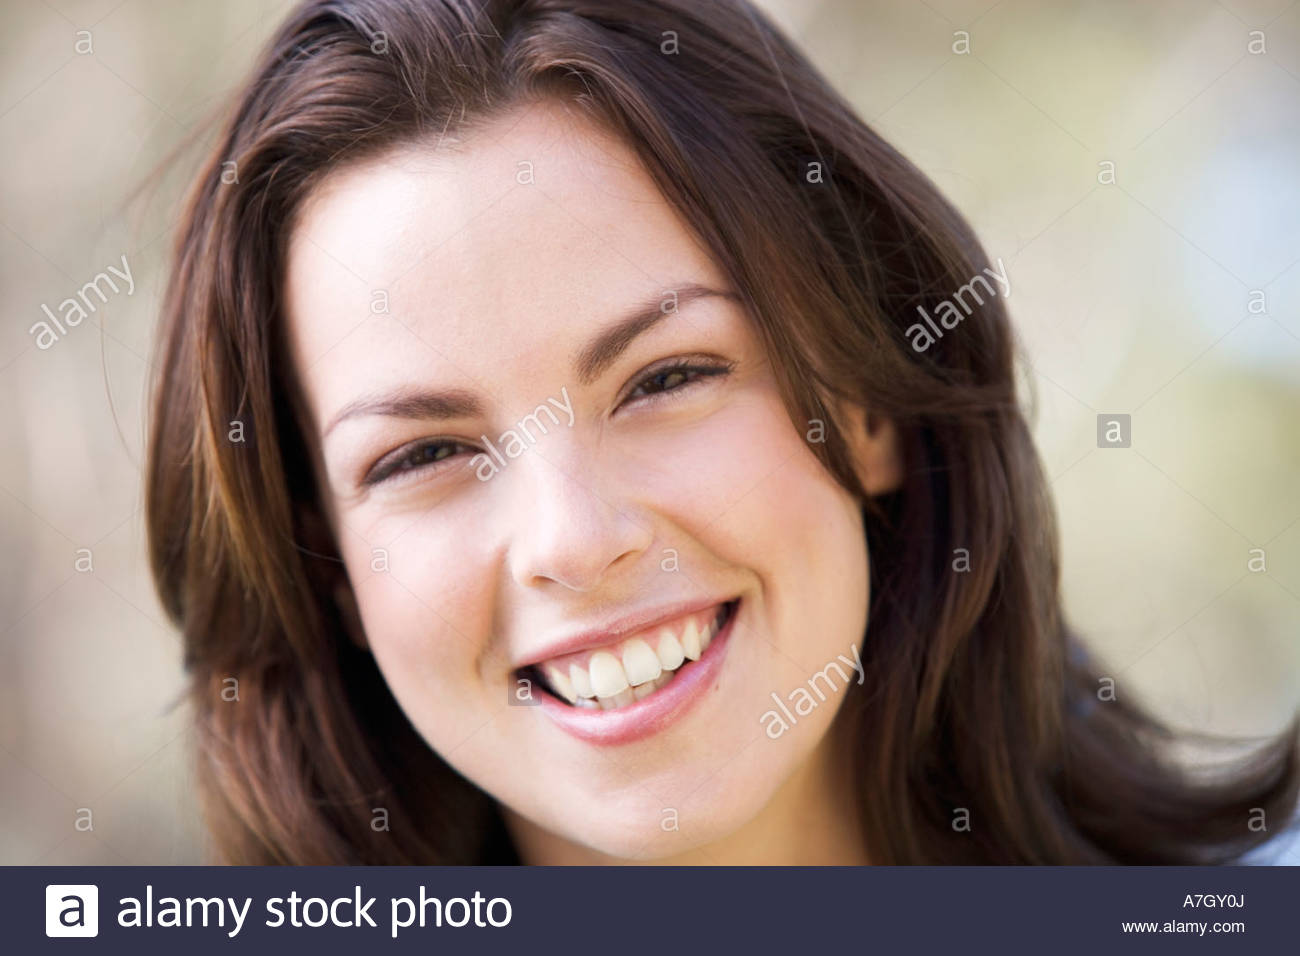 Portrait of a woman, close-up - Stock Image